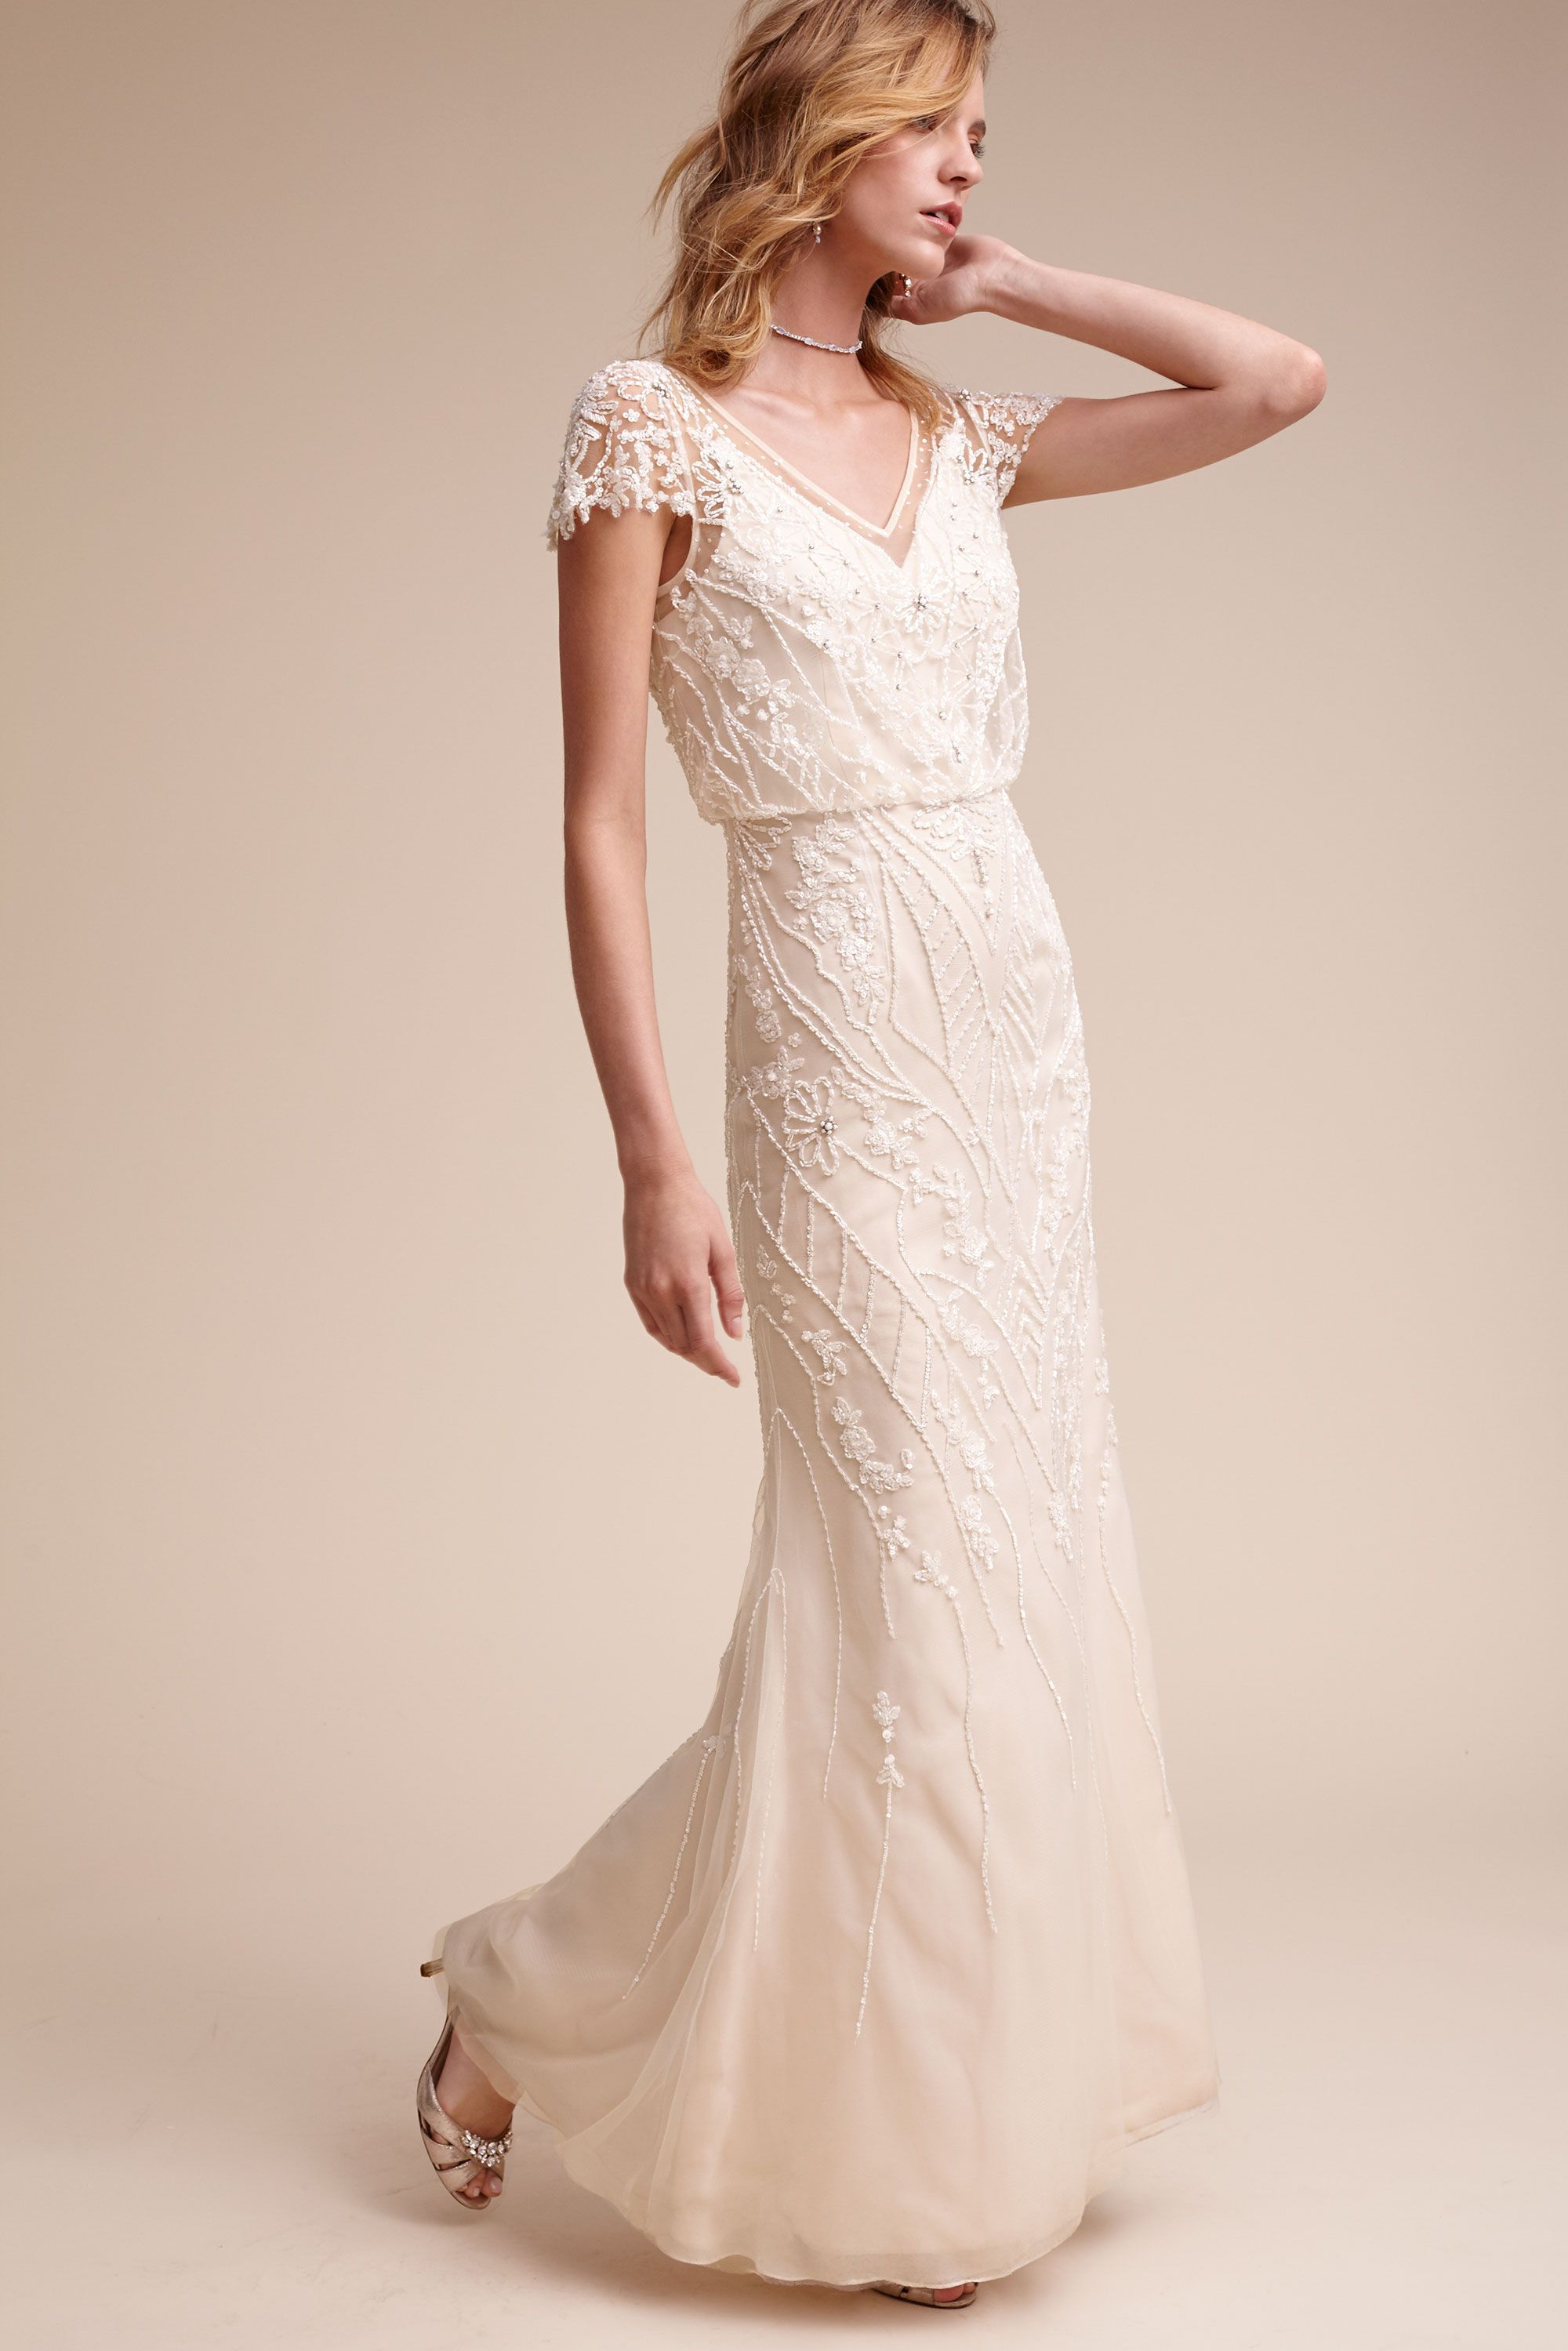 Casual wedding dress with sleeves  BHLDN Aurora Gown in Bride Wedding Dresses Sleeves  BHLDN